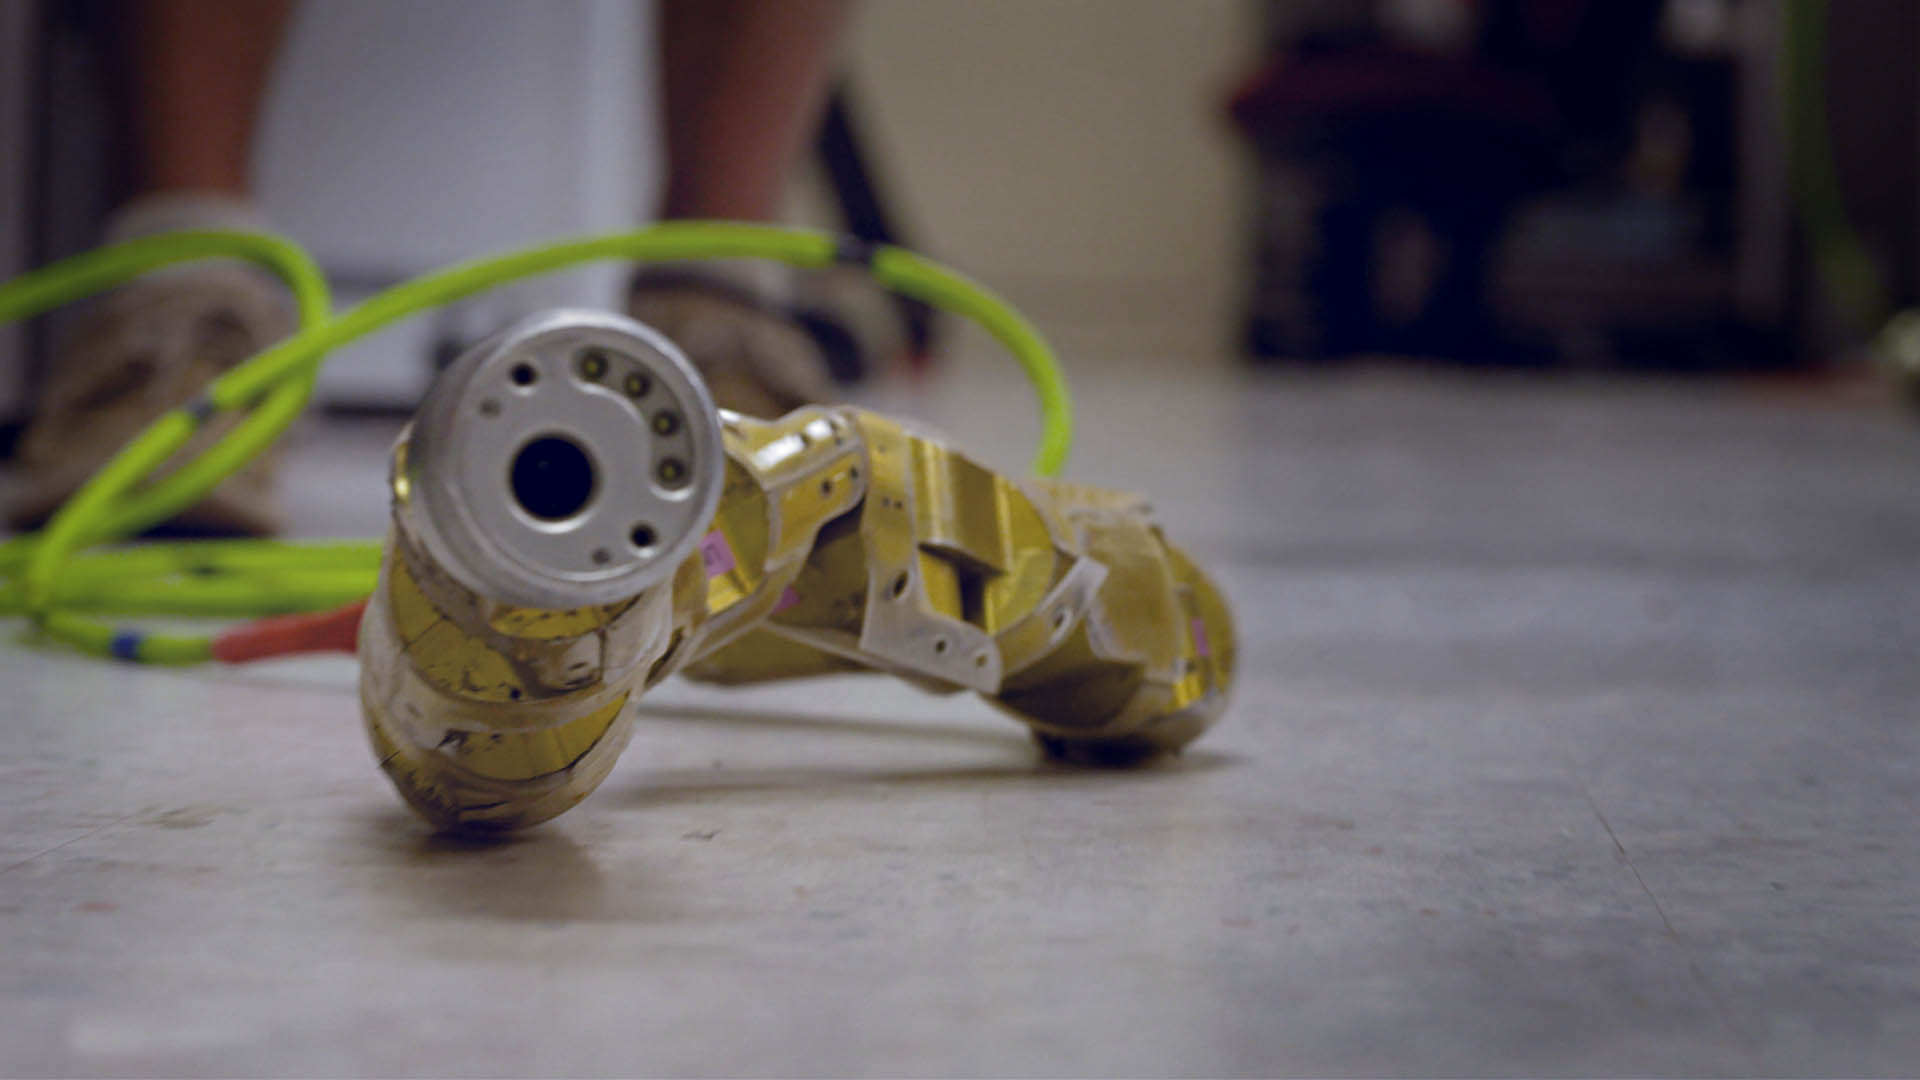 See why this snake inspired robot is so important